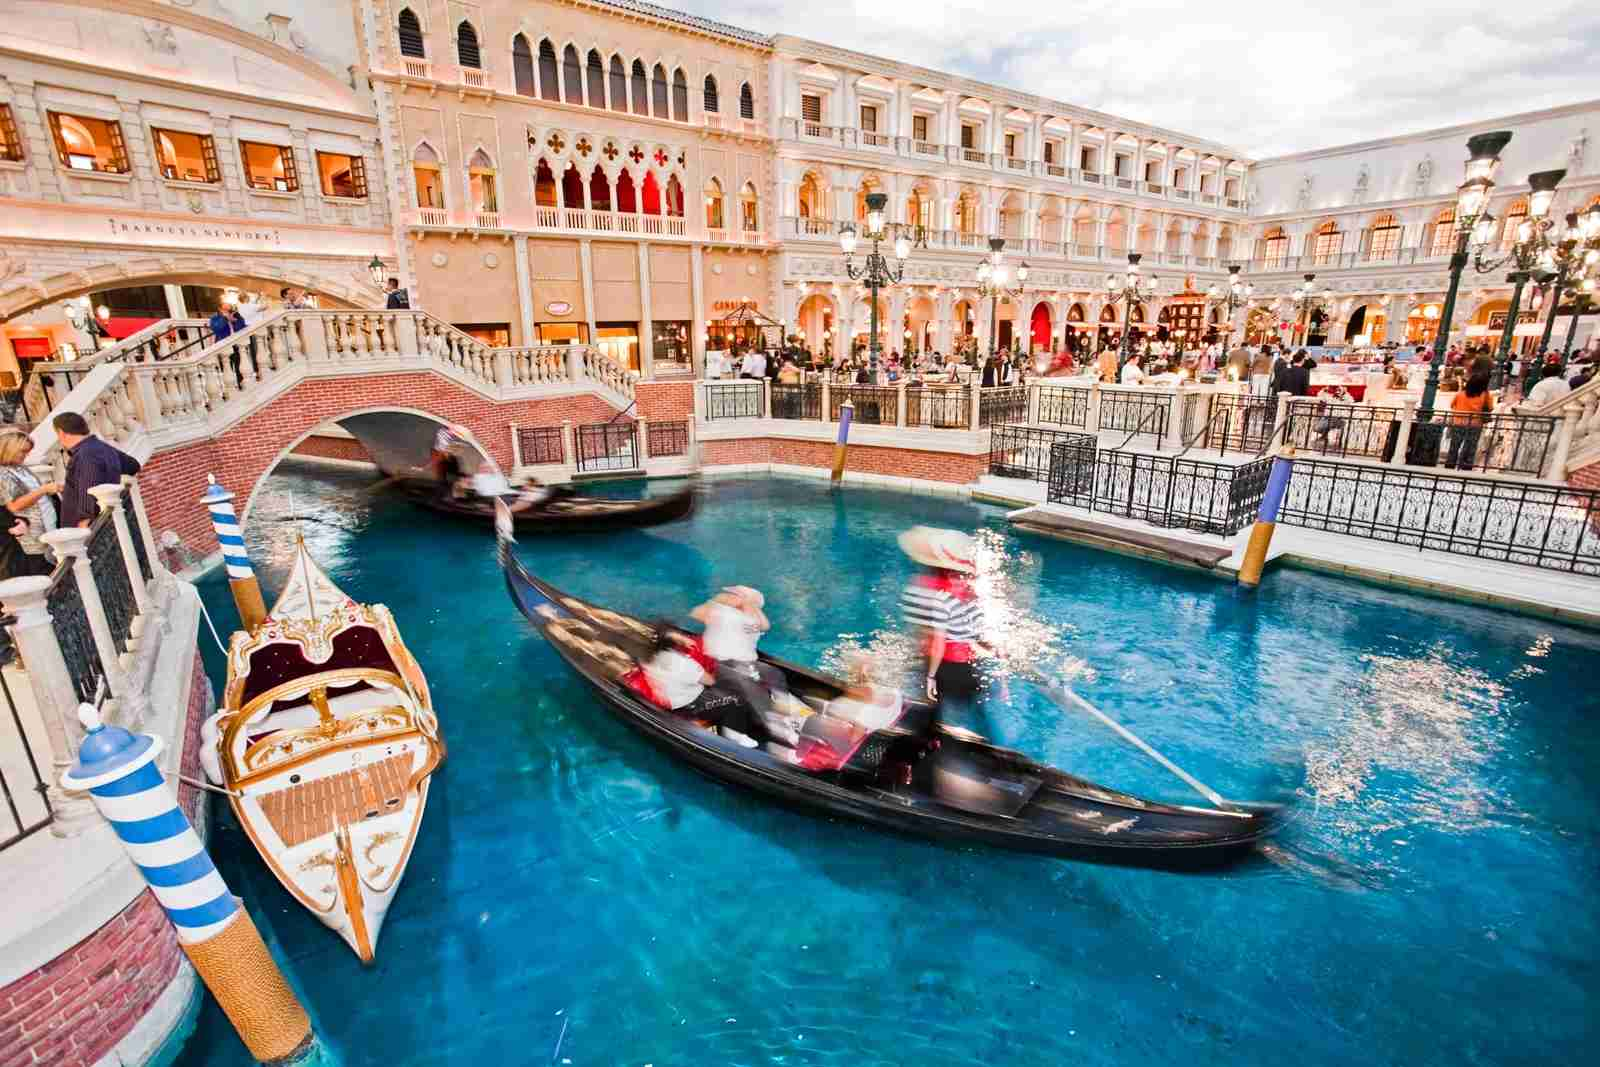 Gondola rides at the Venetian Hotel. (Photo by Eddie Brady/Getty Images)